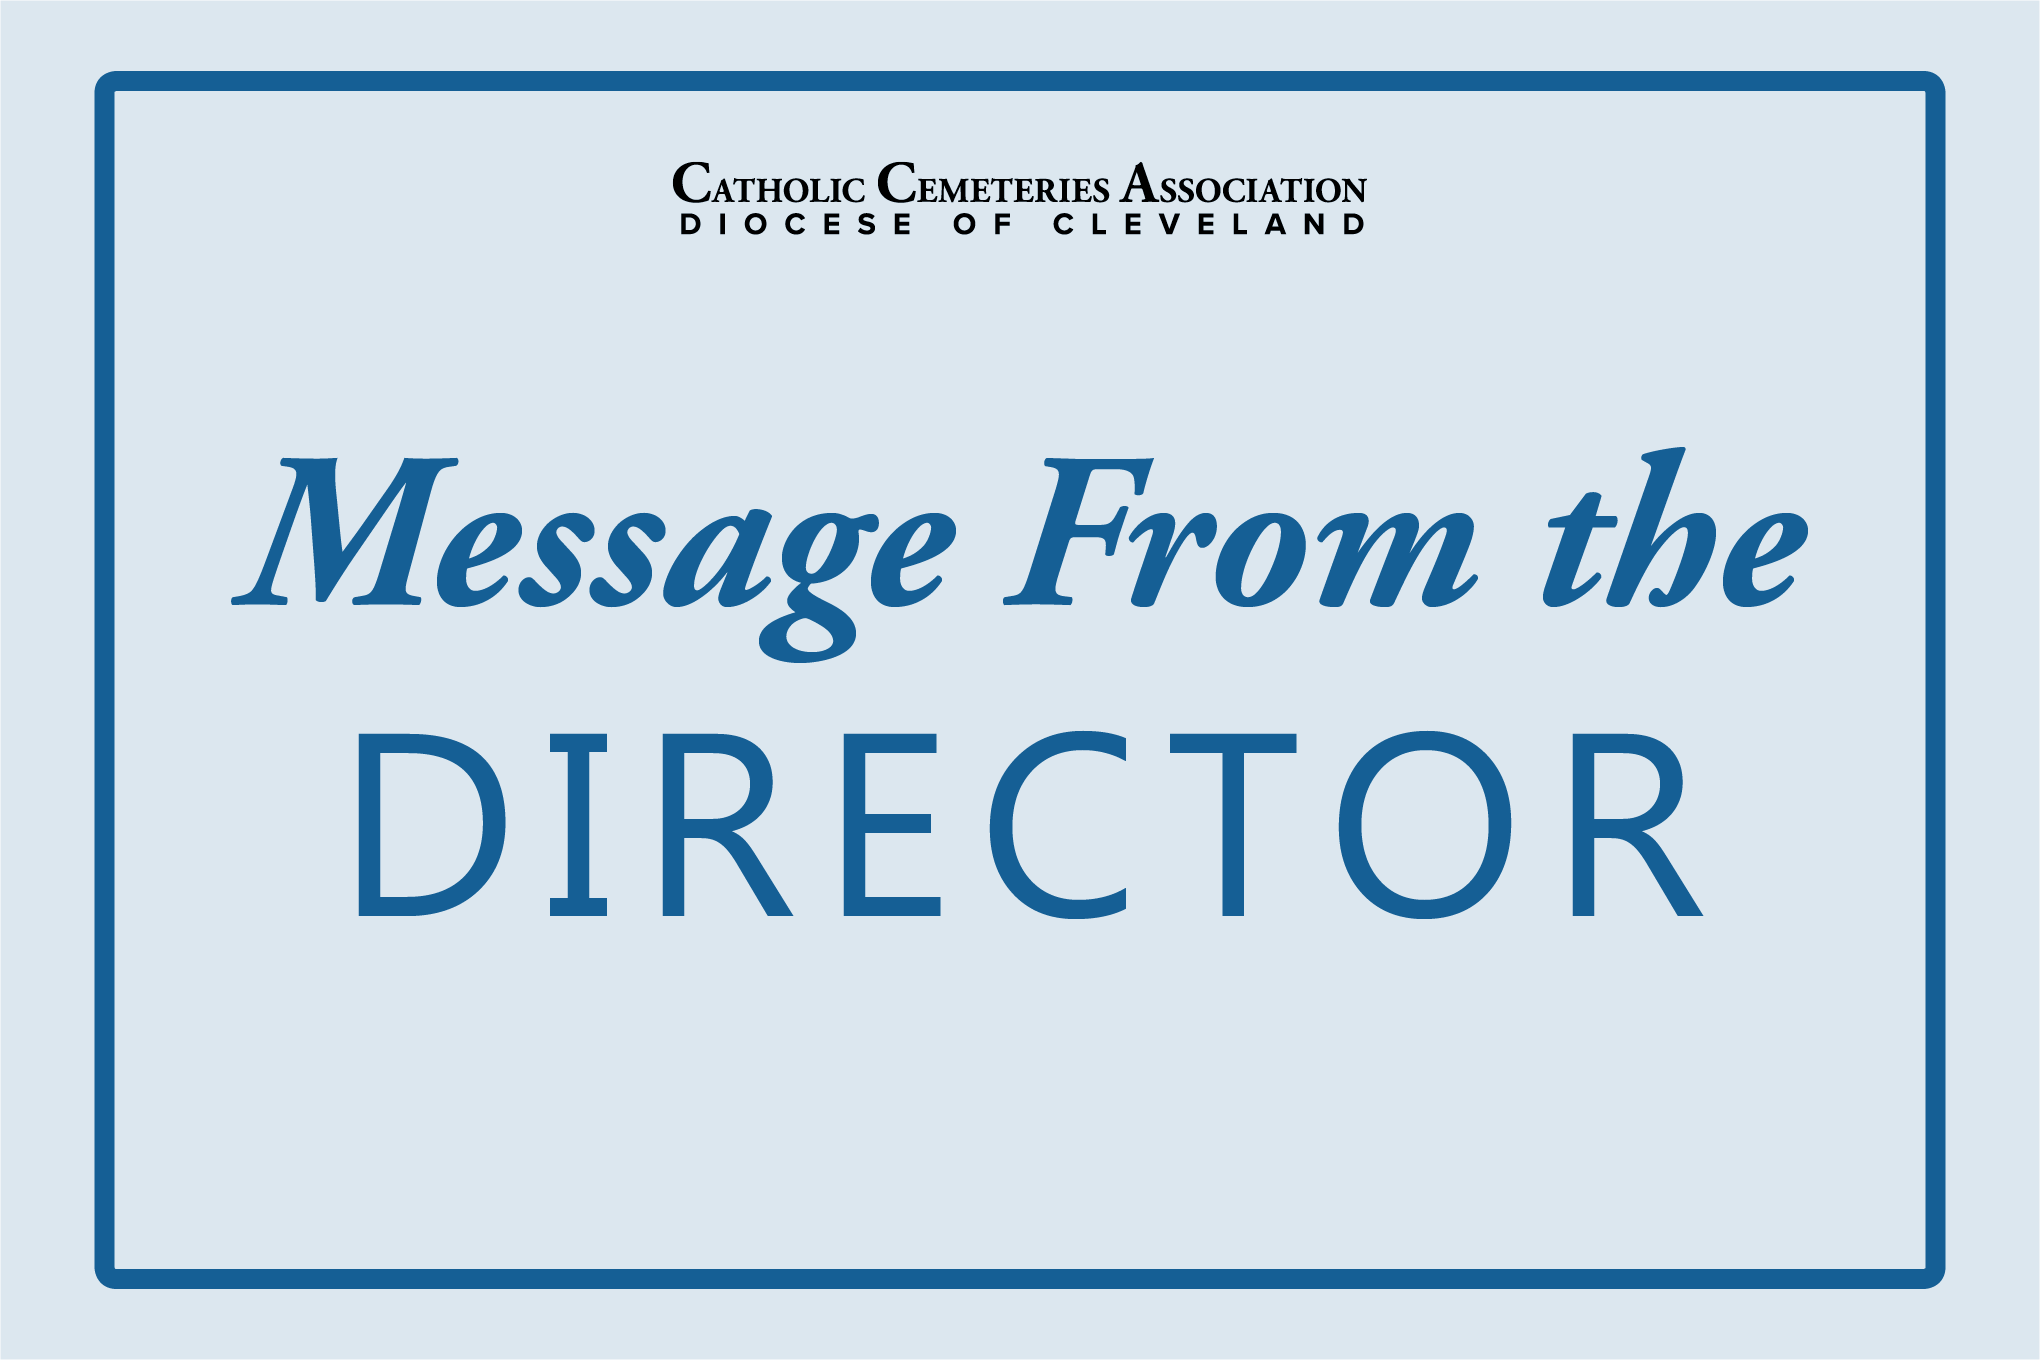 Message from director image header